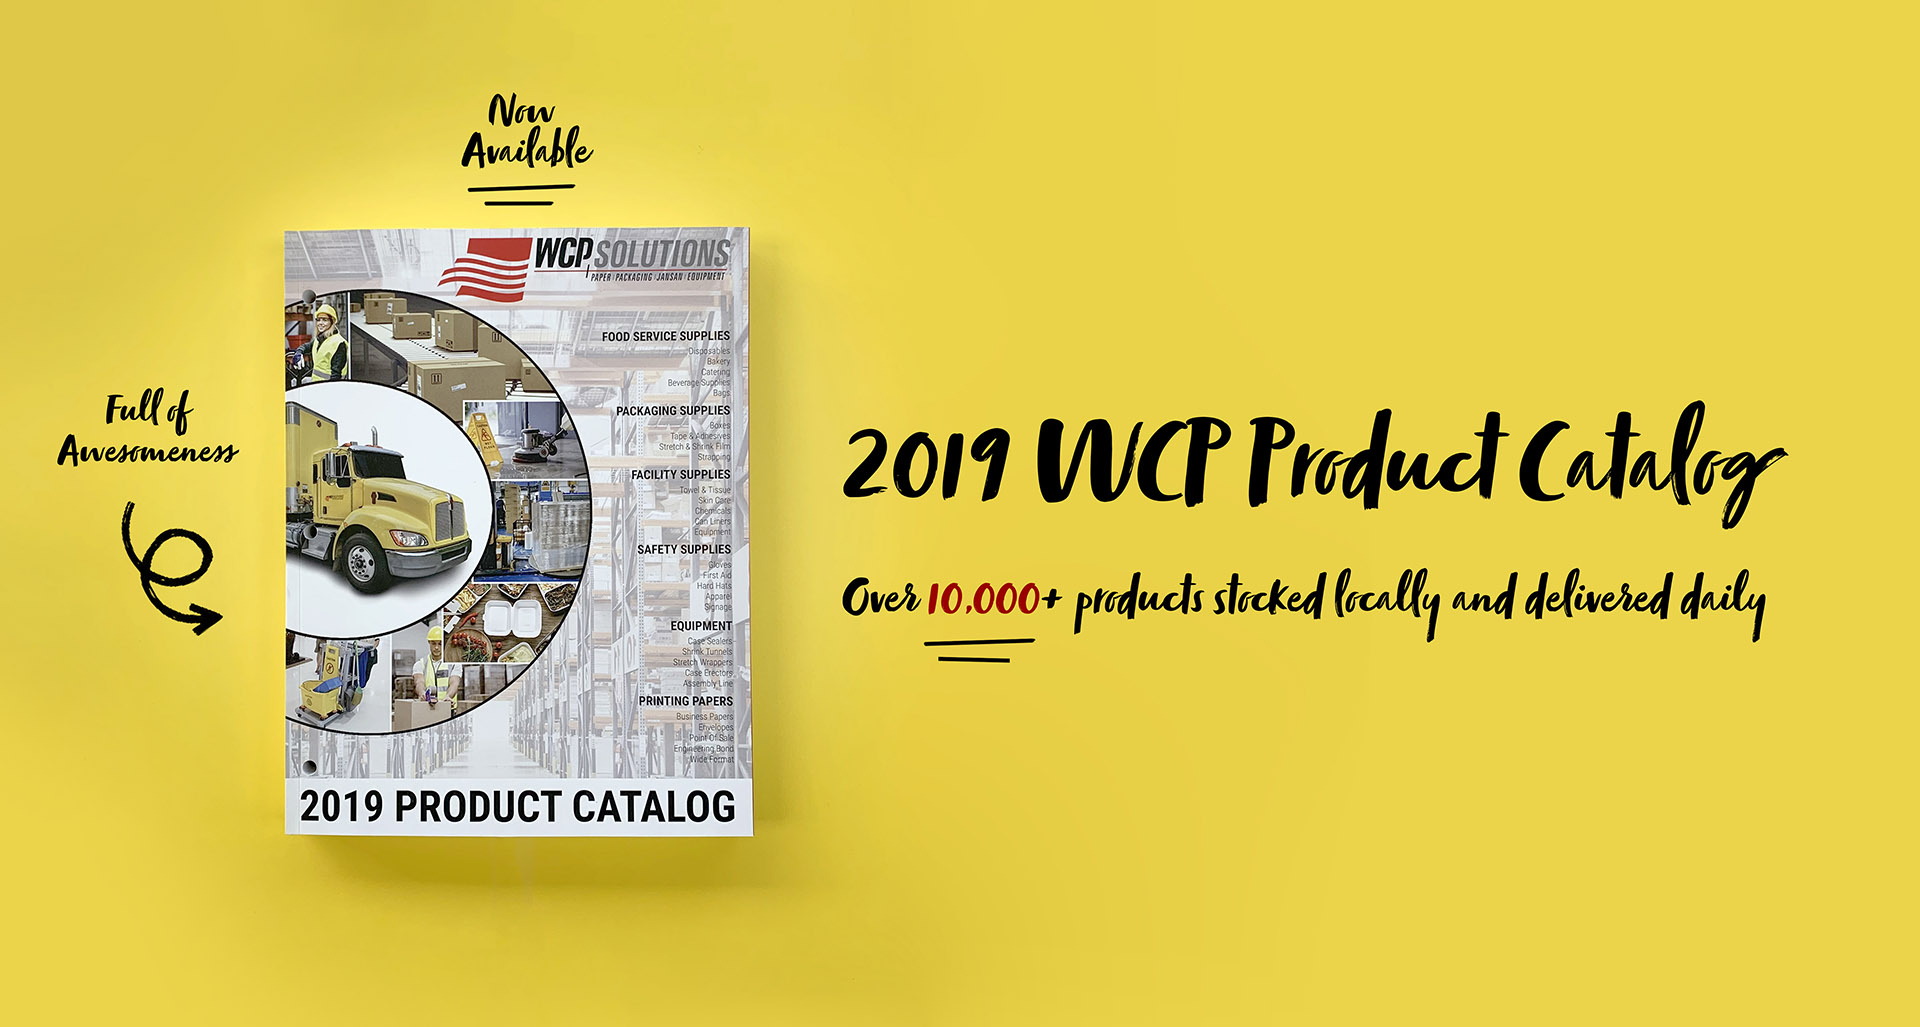 2019 WCP Industrial Wholesale Product Catalog - Featuring Packaging, Facility Supplies, Food Service Processing, and Equipment solutions